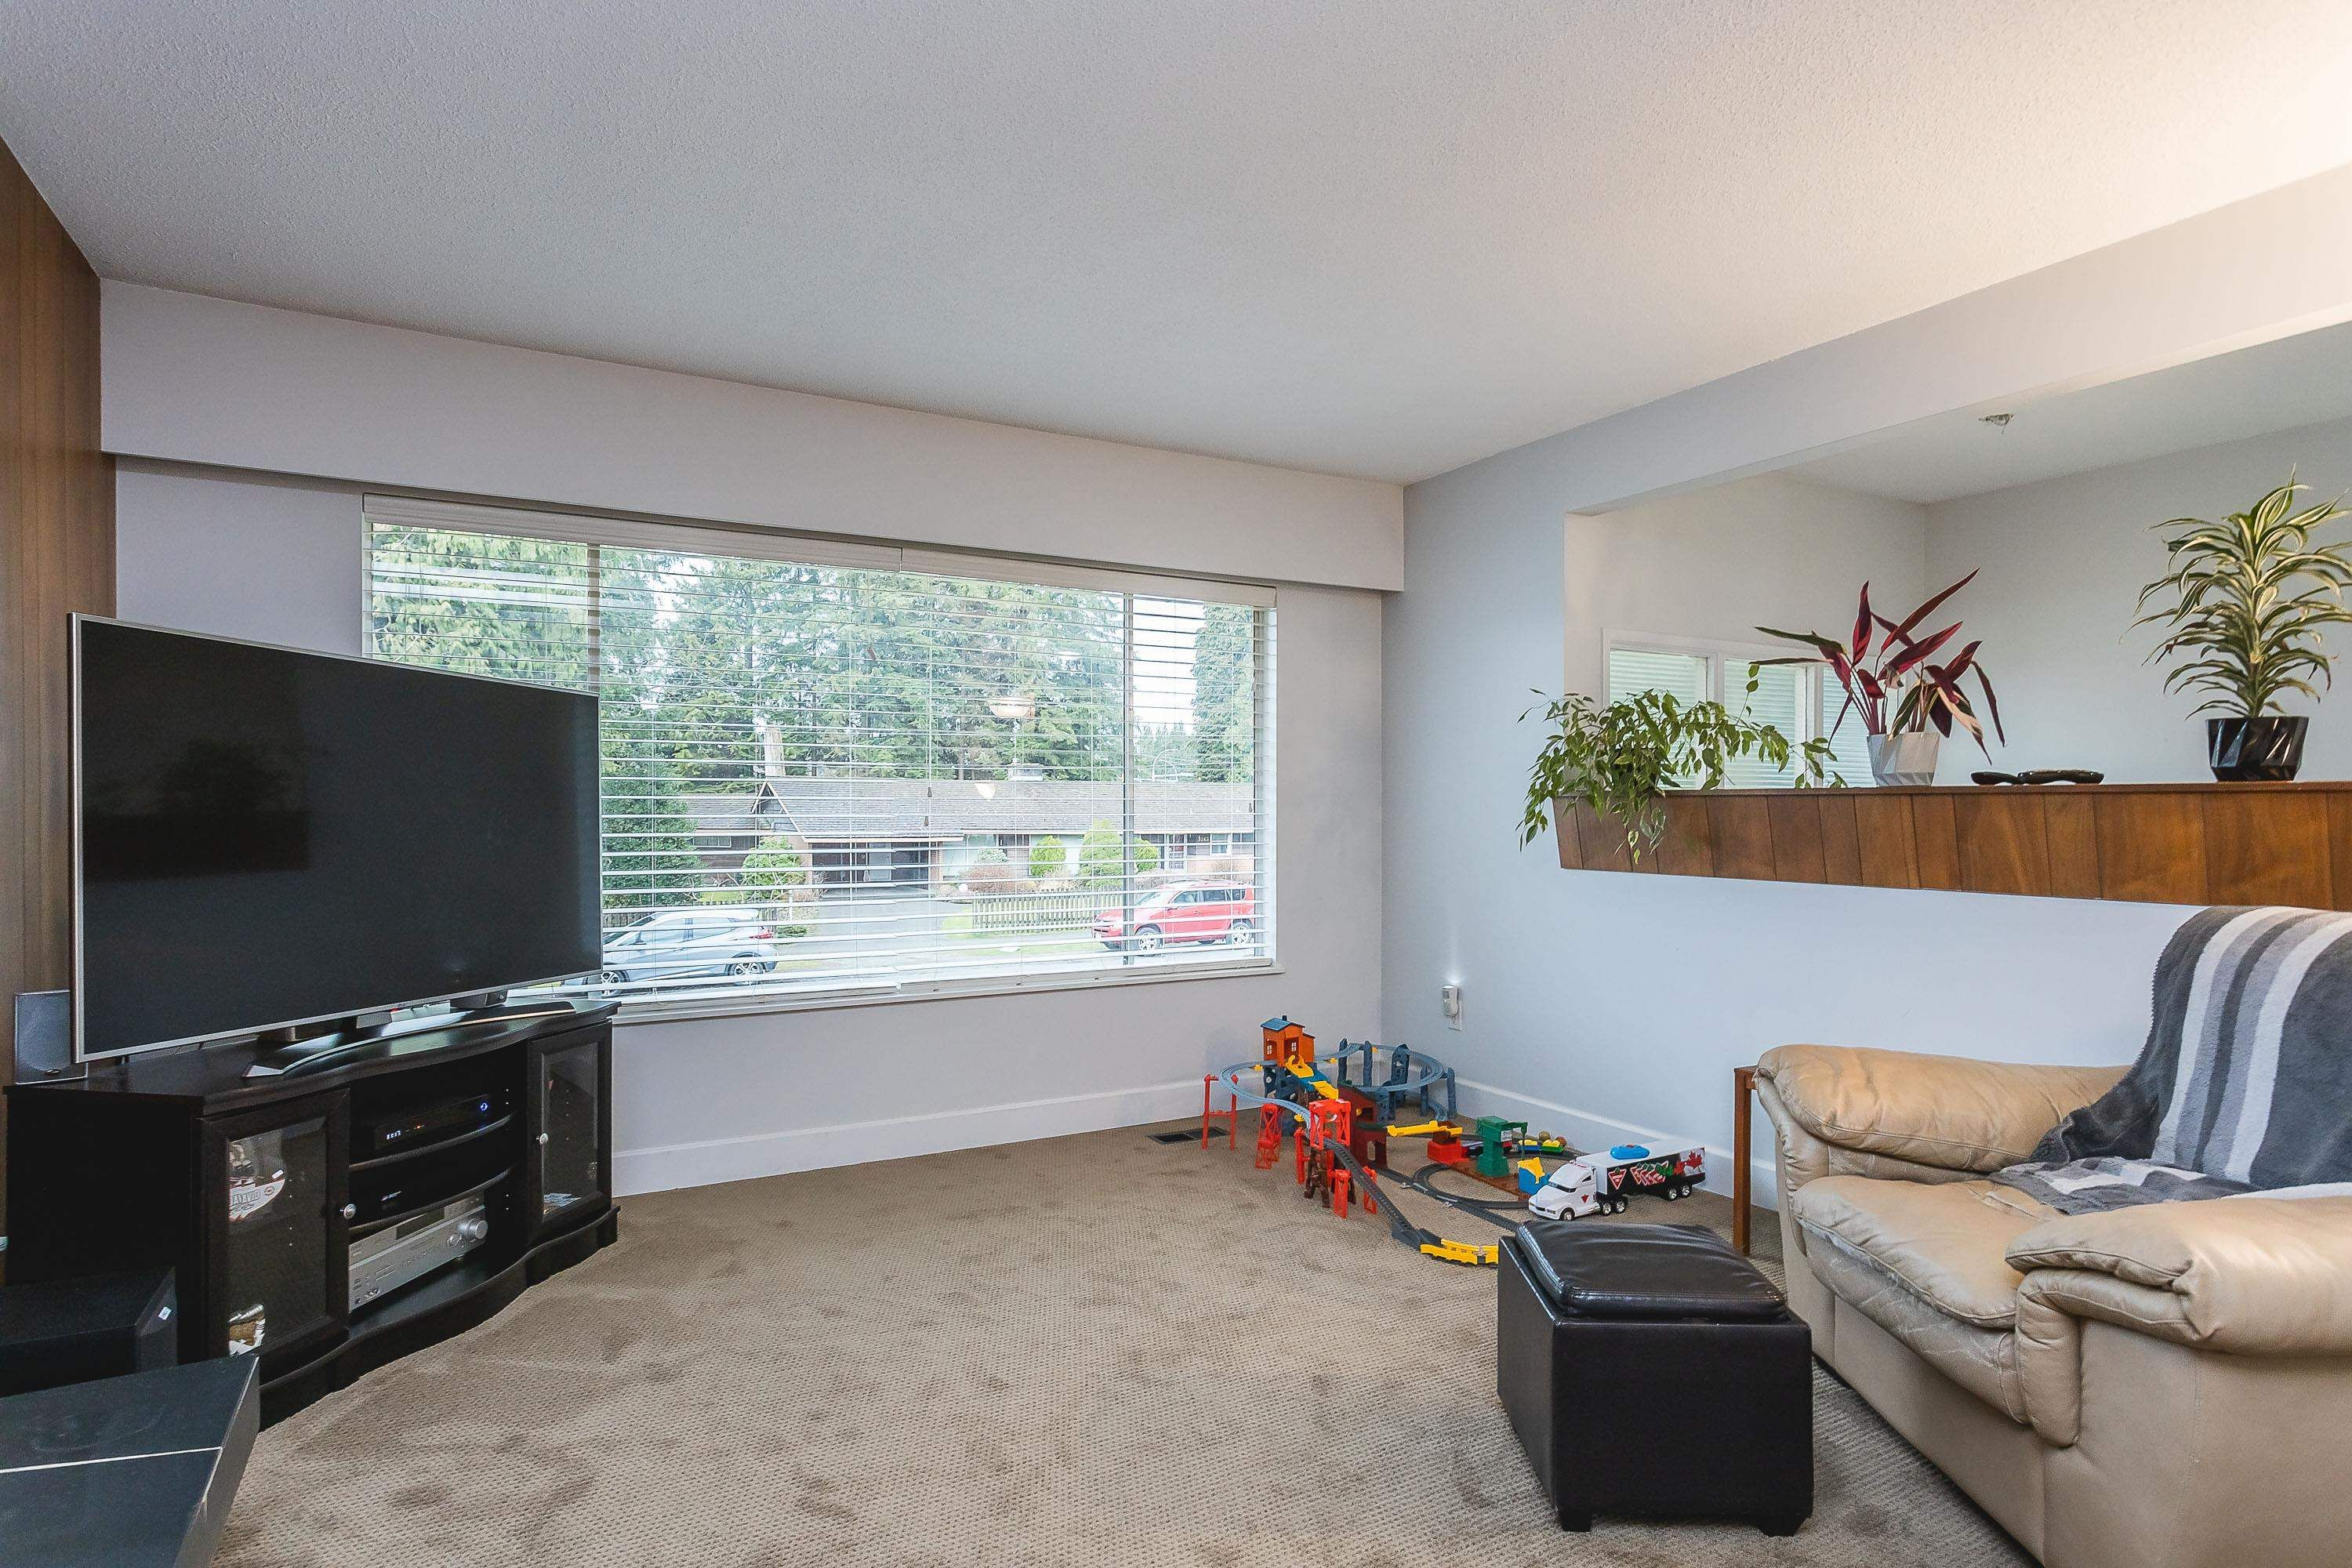 Photo 18: Photos: 3260 ULSTER Street in Port Coquitlam: Lincoln Park PQ House for sale : MLS®# R2613283